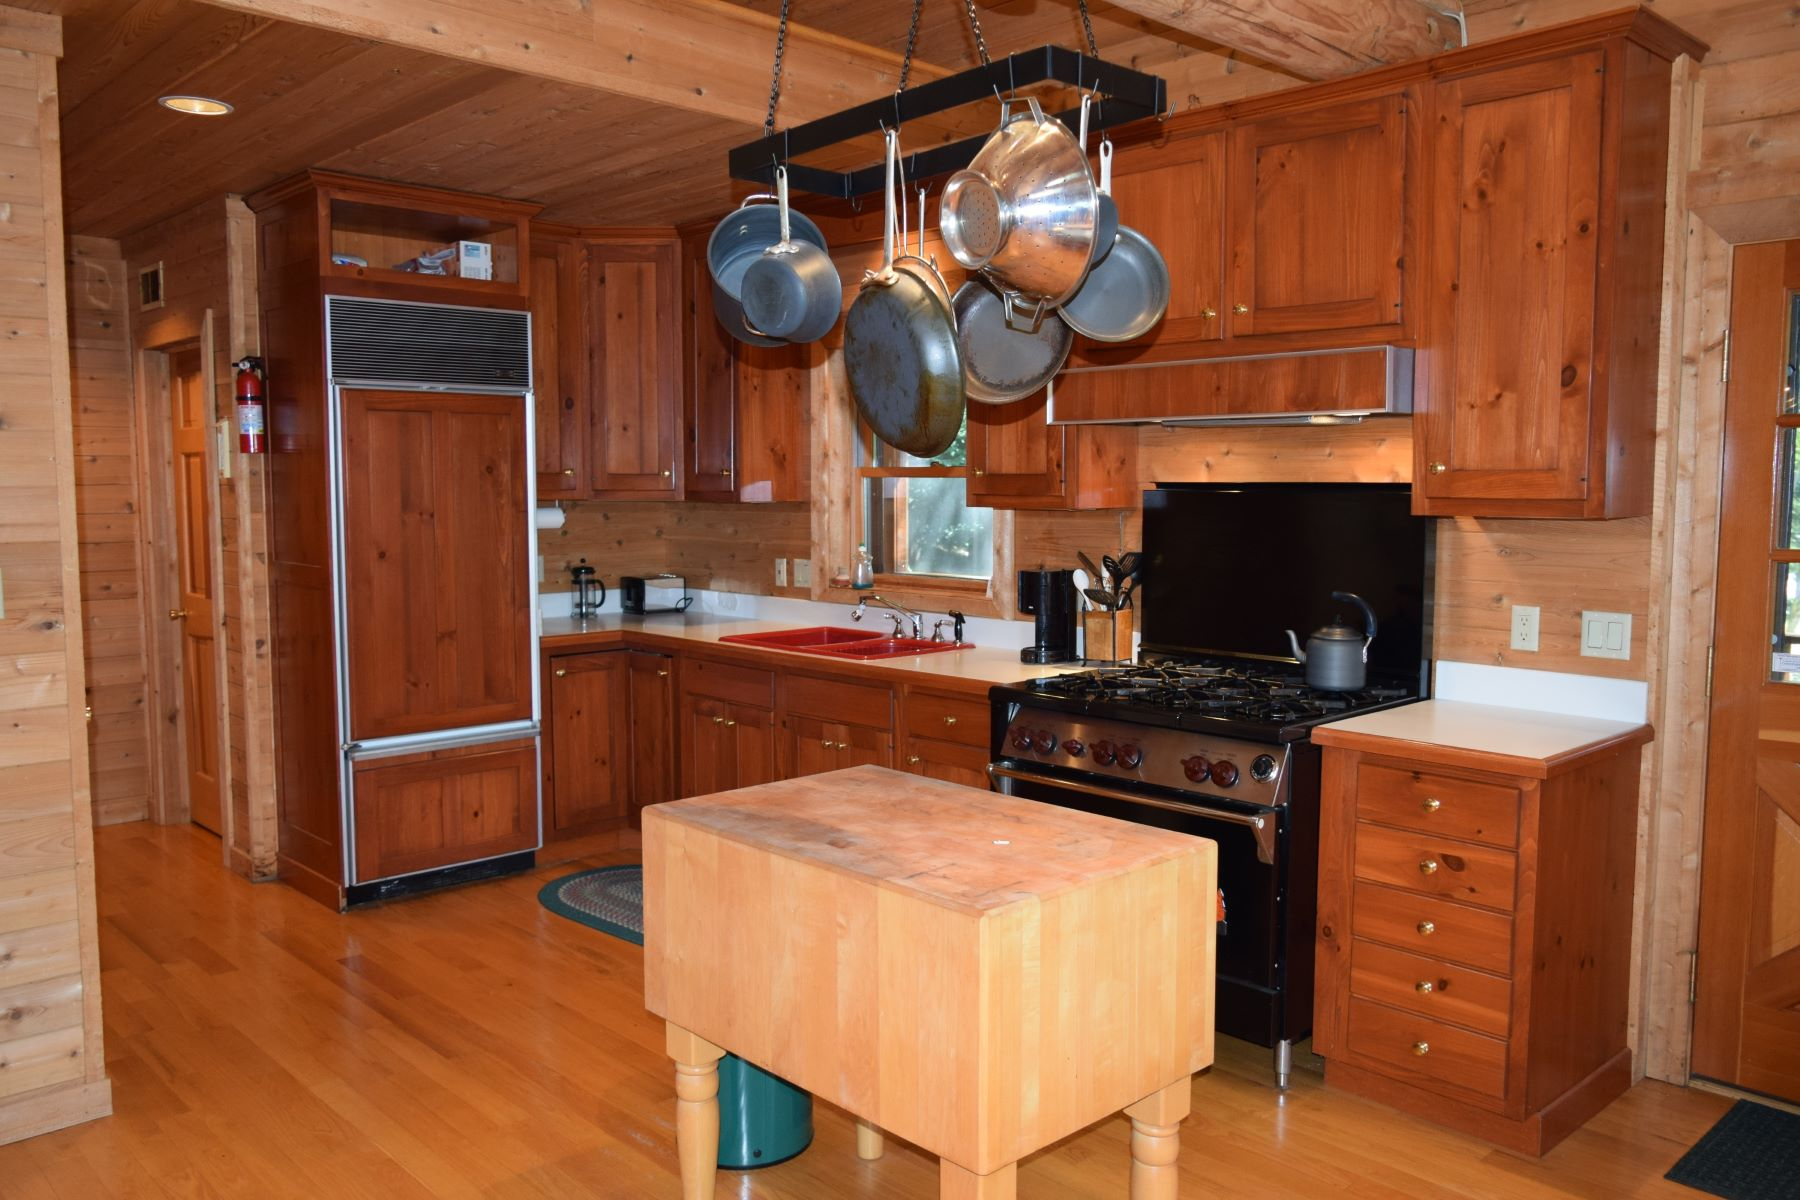 Additional photo for property listing at Personal  Sanctuary with Cedar Log Home and Private Lake 162 Farr Rd. Remsen, New York 13438 United States